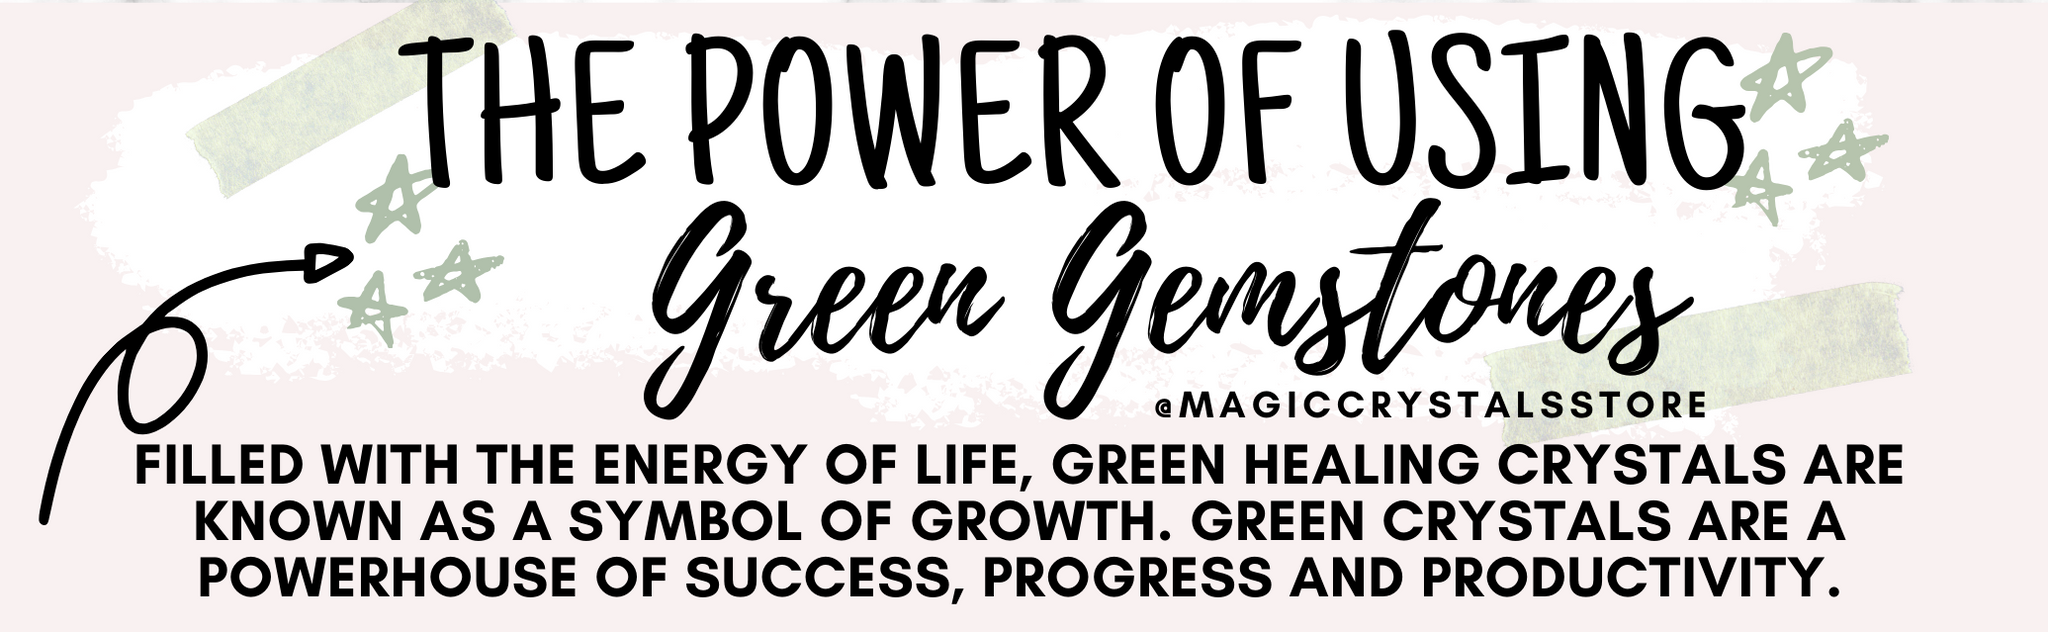 Green Healing Crystals for Growth, Wisdom & Wealth